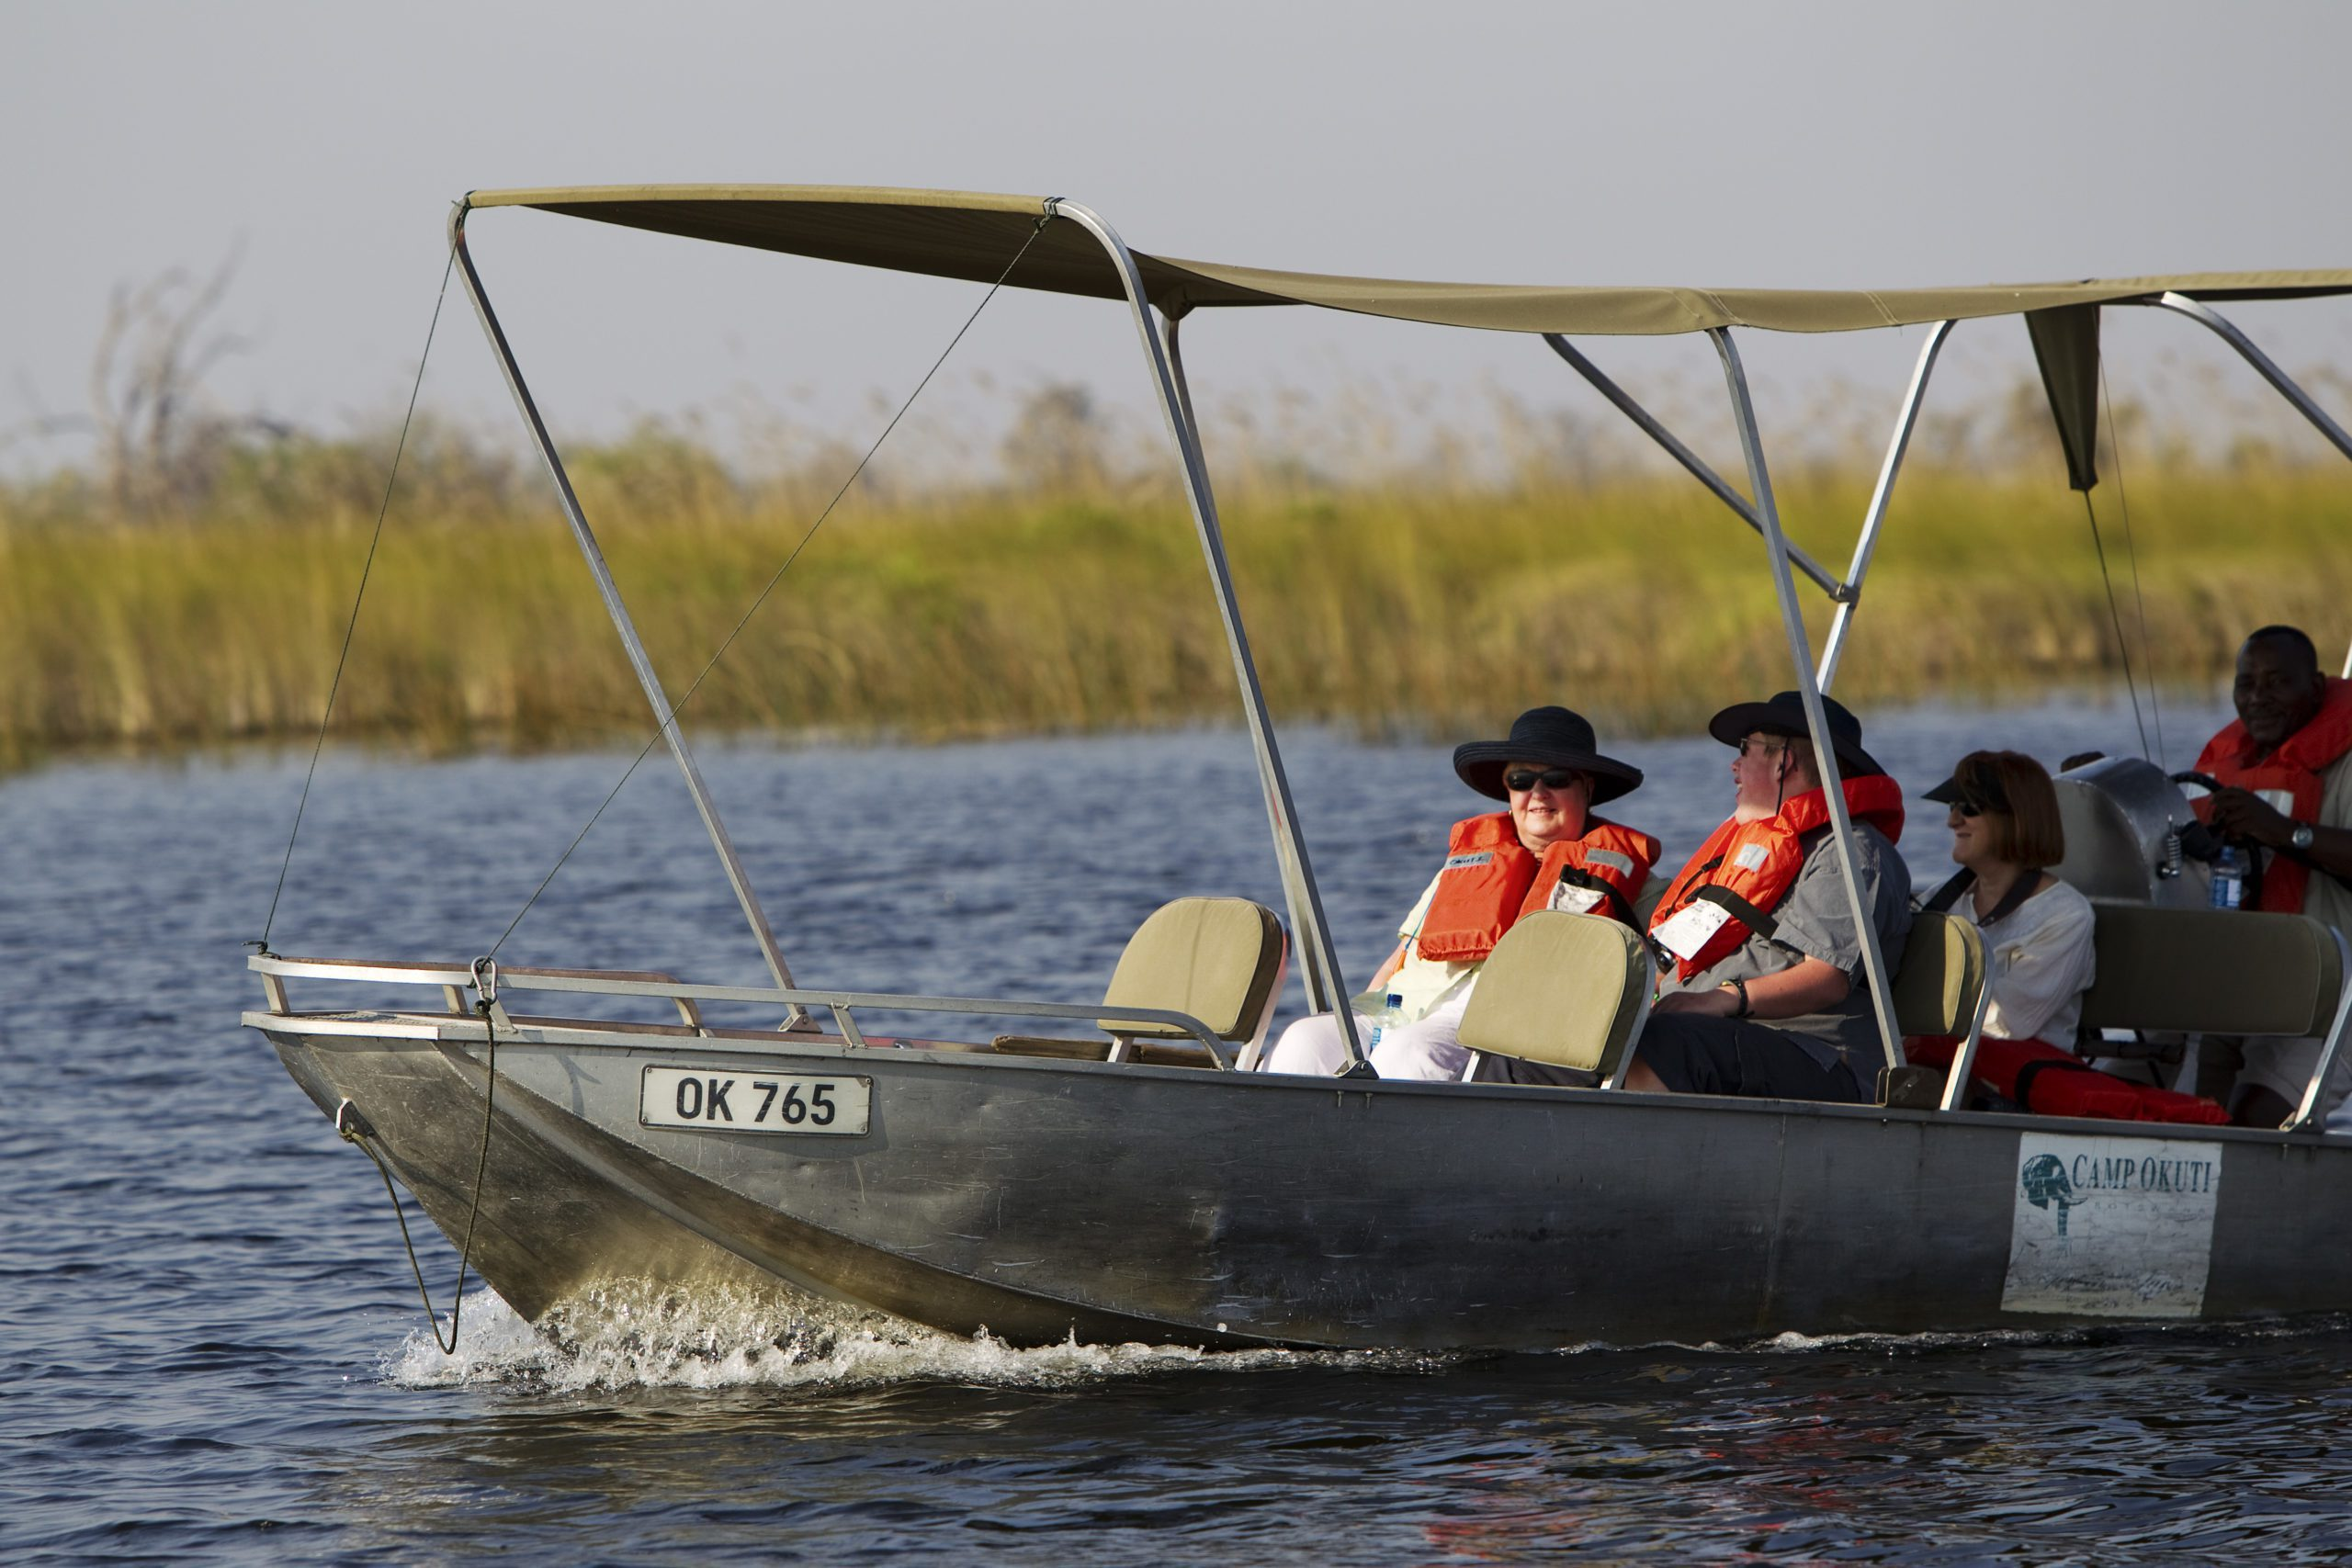 shinde camp water safari motorized boat with two guests